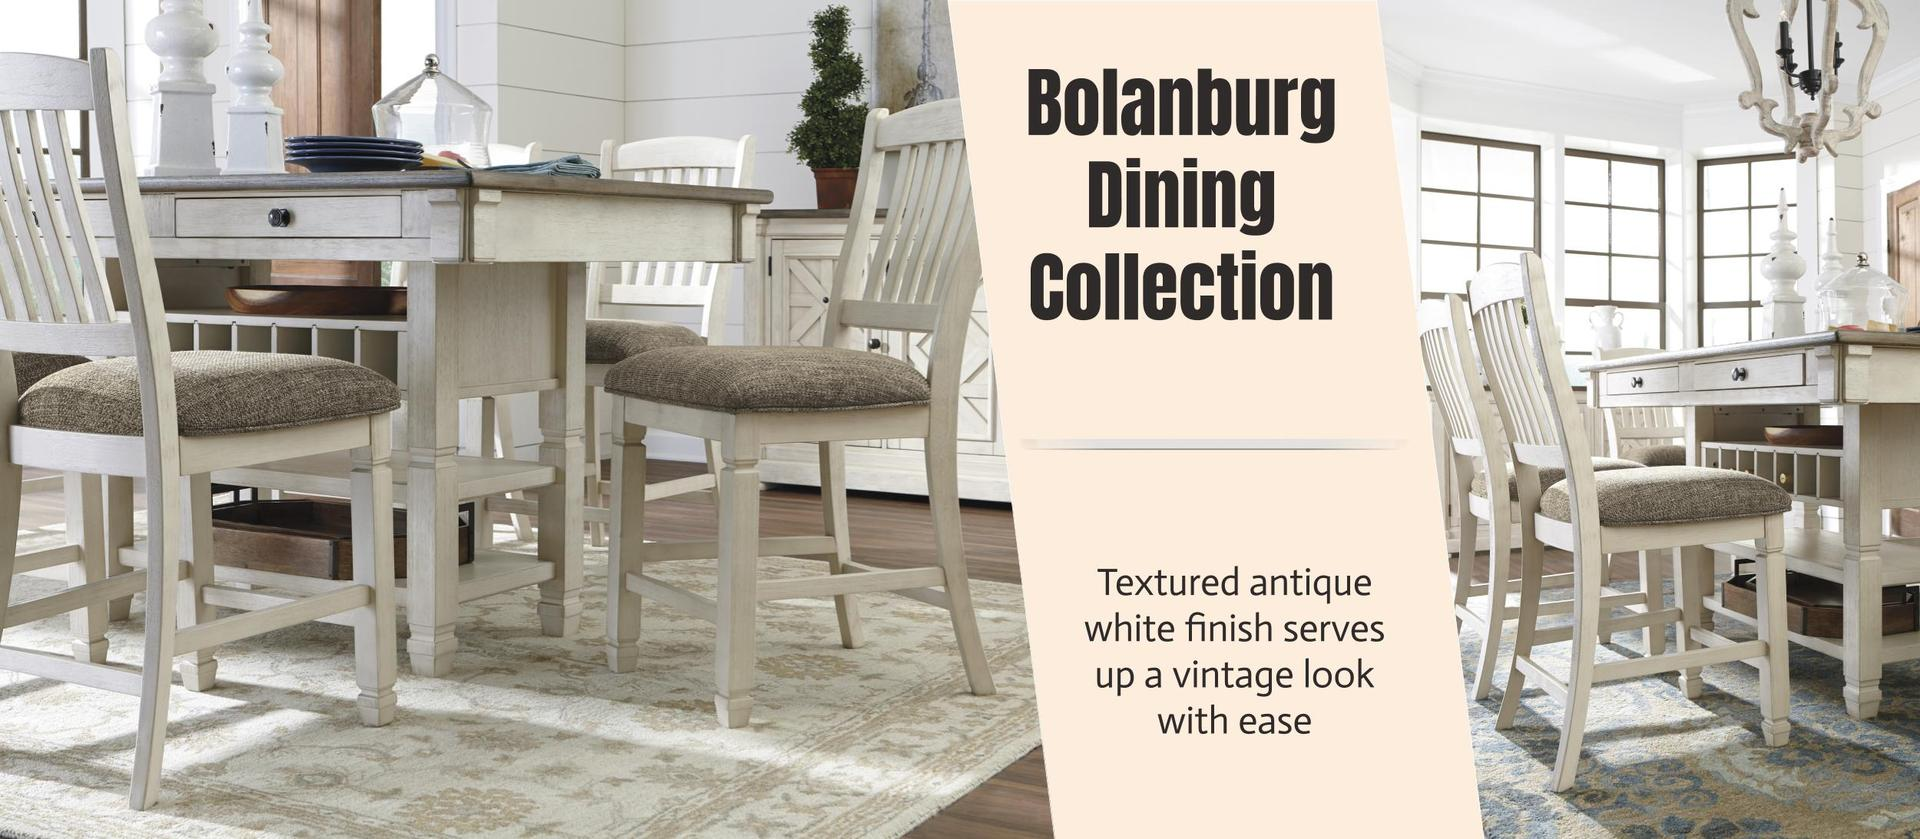 Bolanburg Dining Set